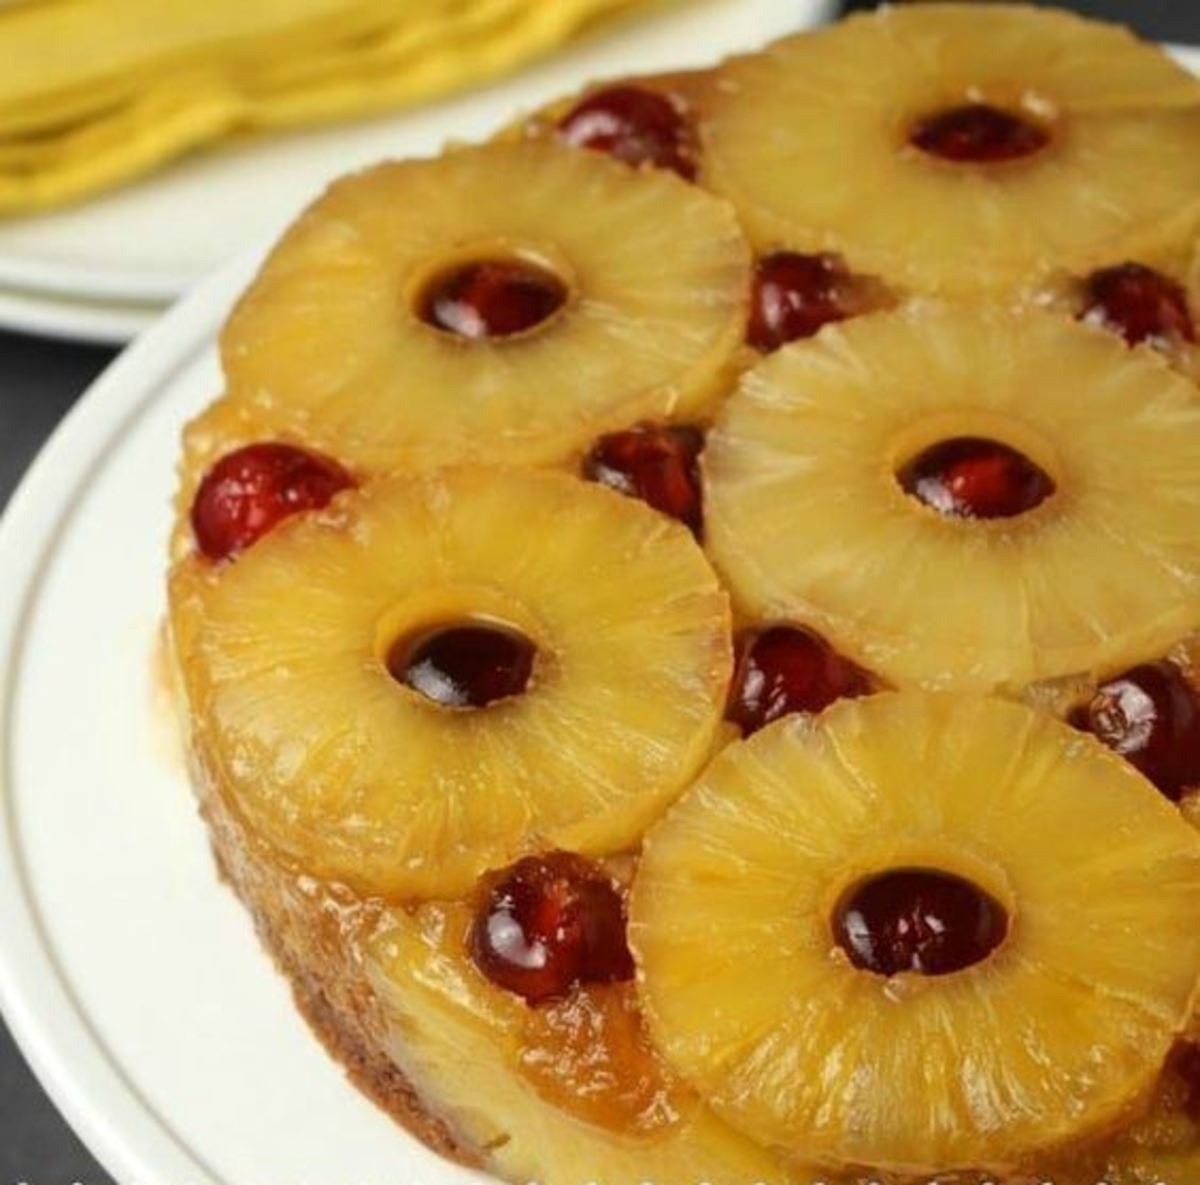 Vegan Pineapple Upside-Down Cake